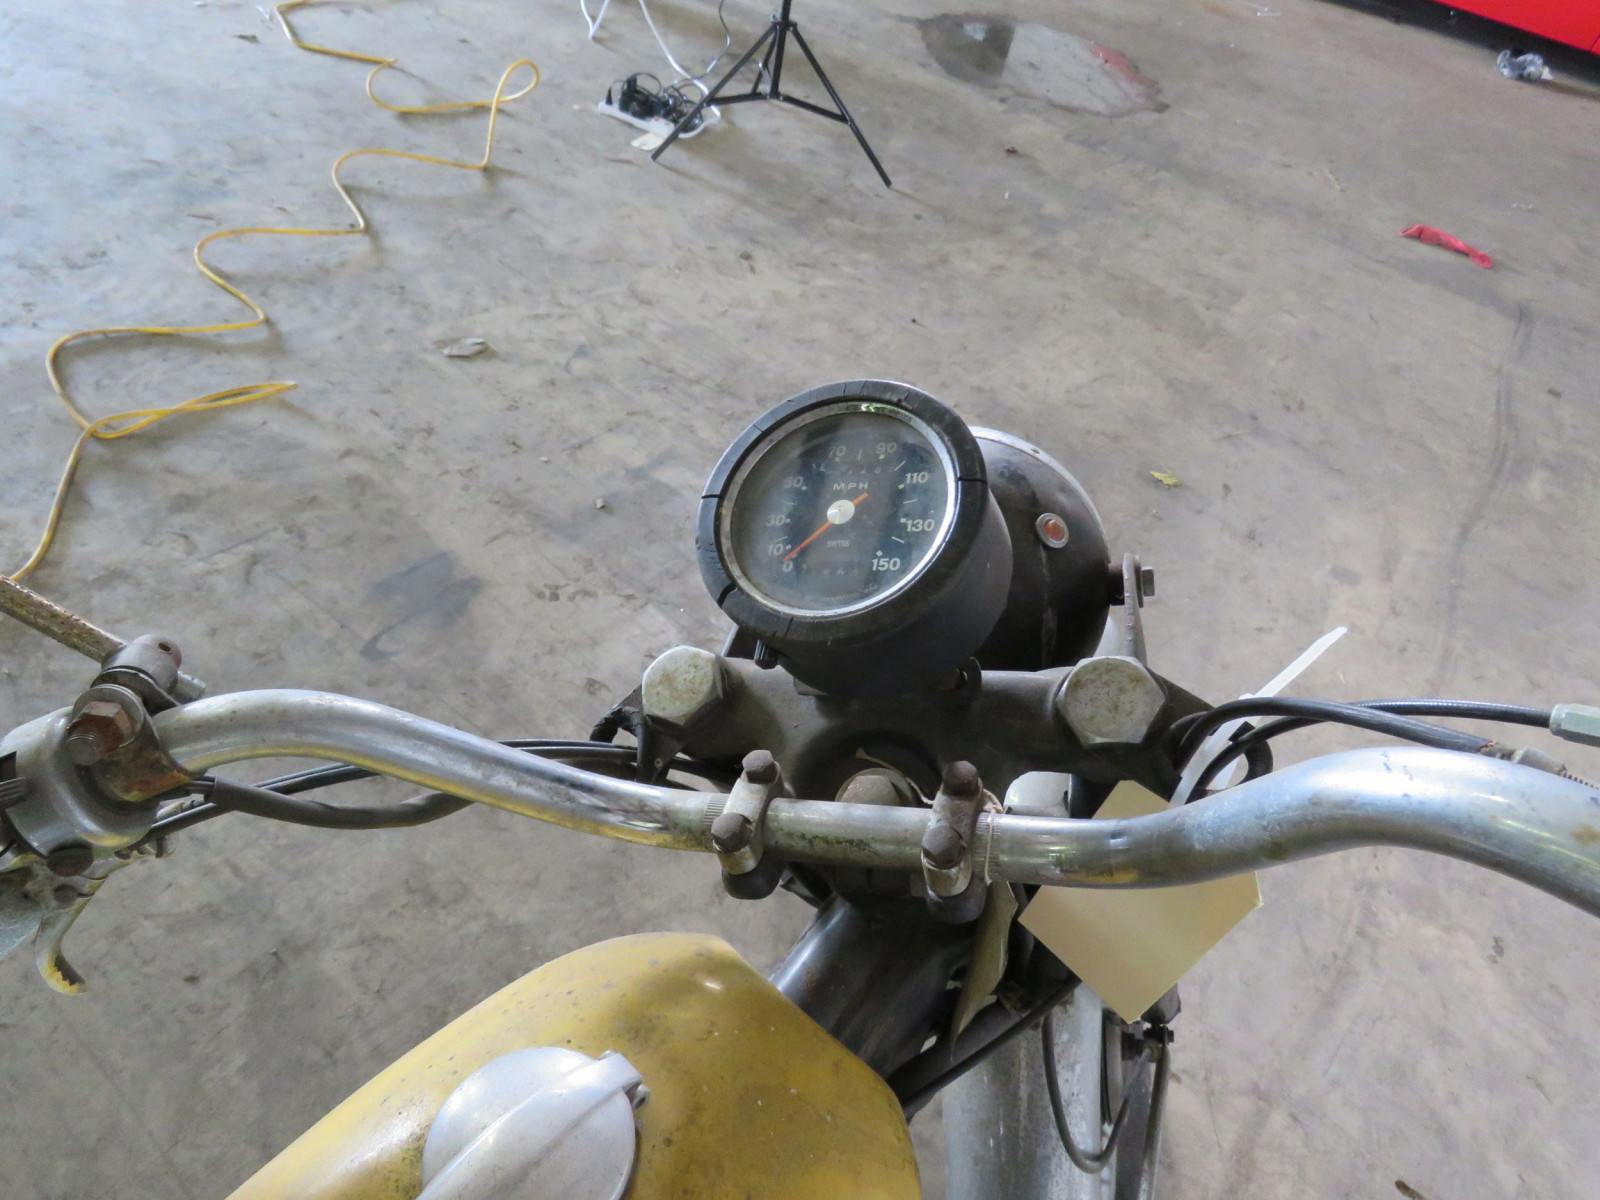 1968 BSA B44 Victor Special Motorcycle - Image 3